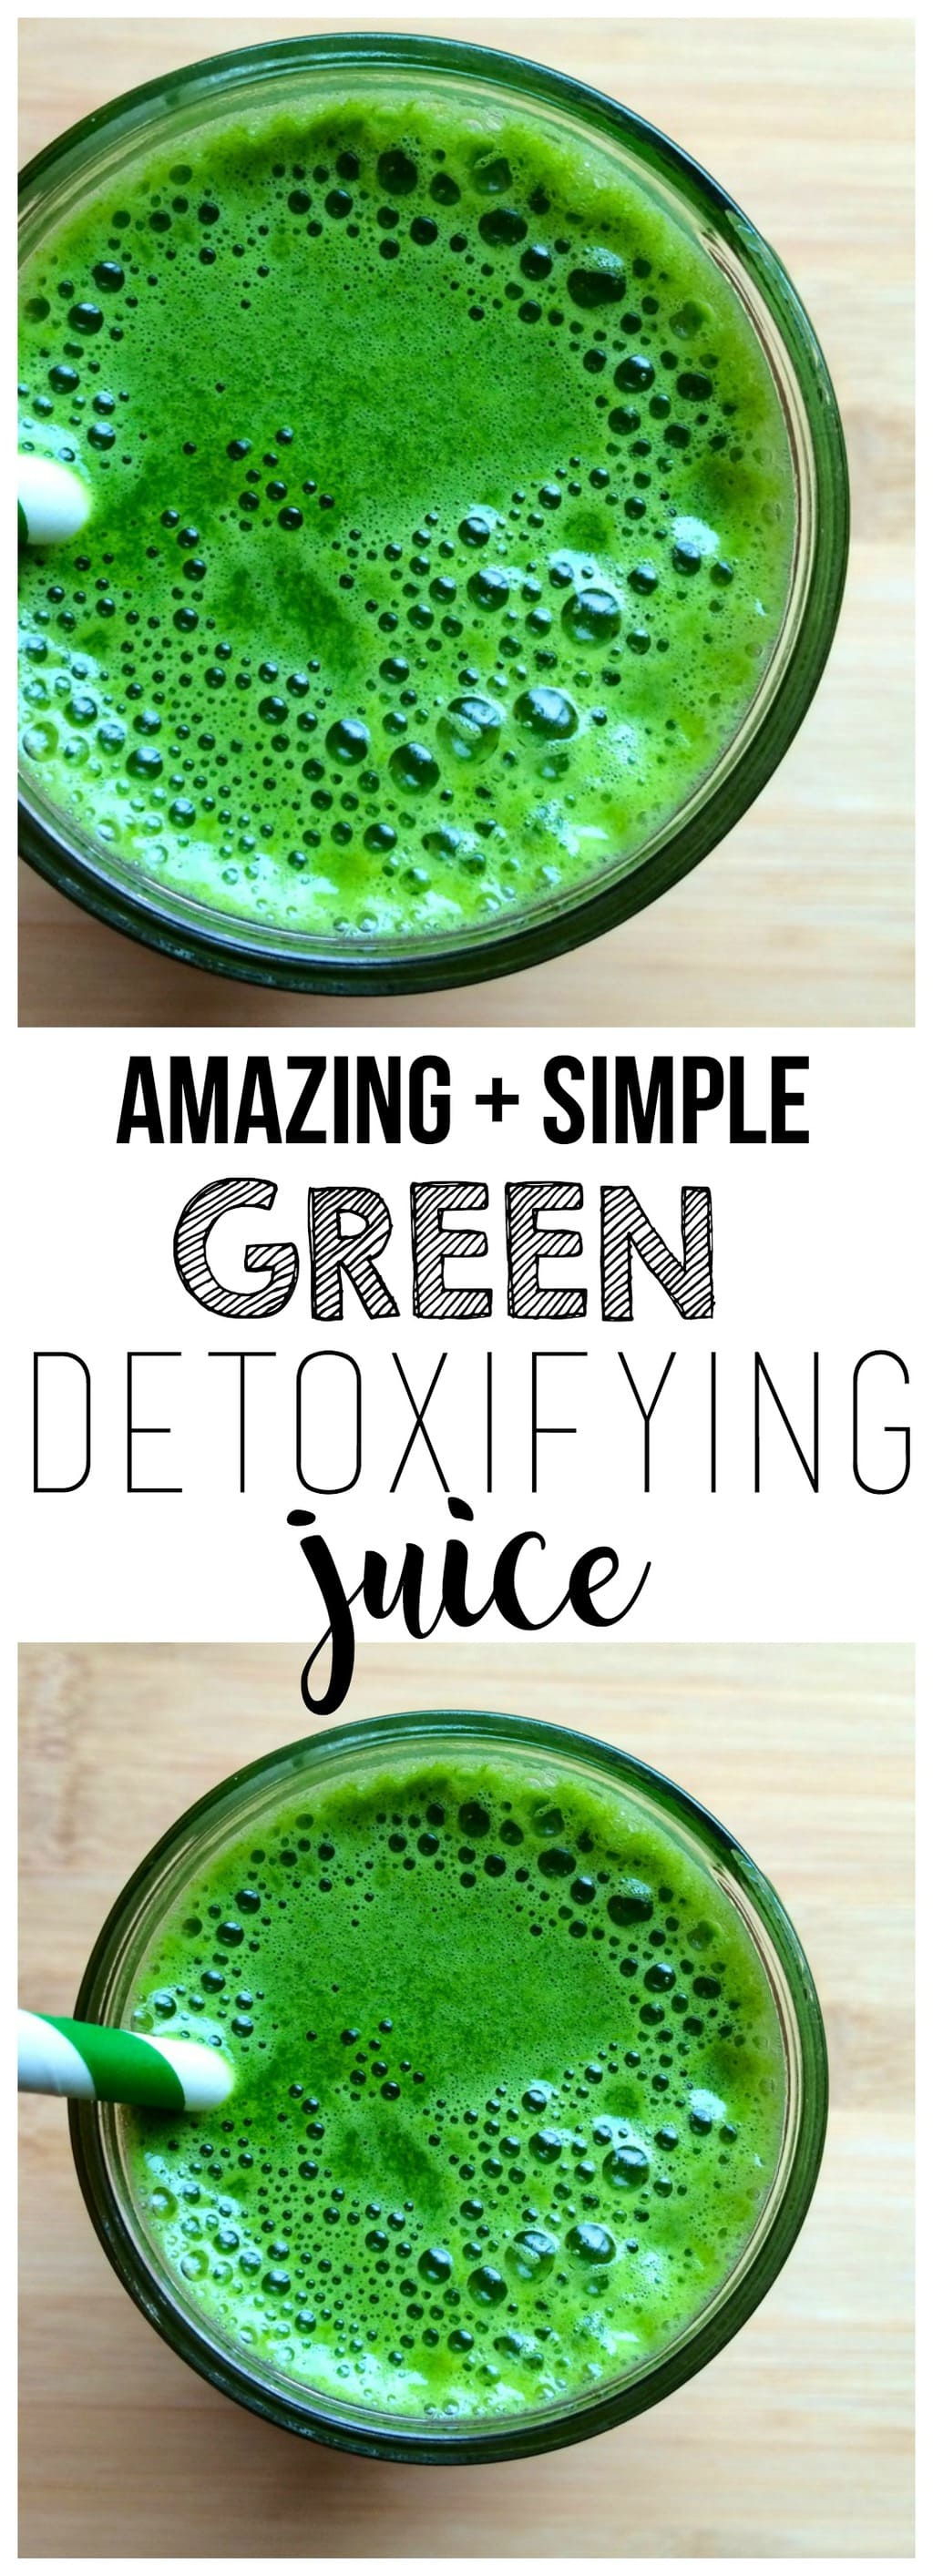 This Green Detoxifying Juice is absolutely AMAZING! It will cleanse you from within and is loaded with nutrition. The perfect way to reset and get back on track.